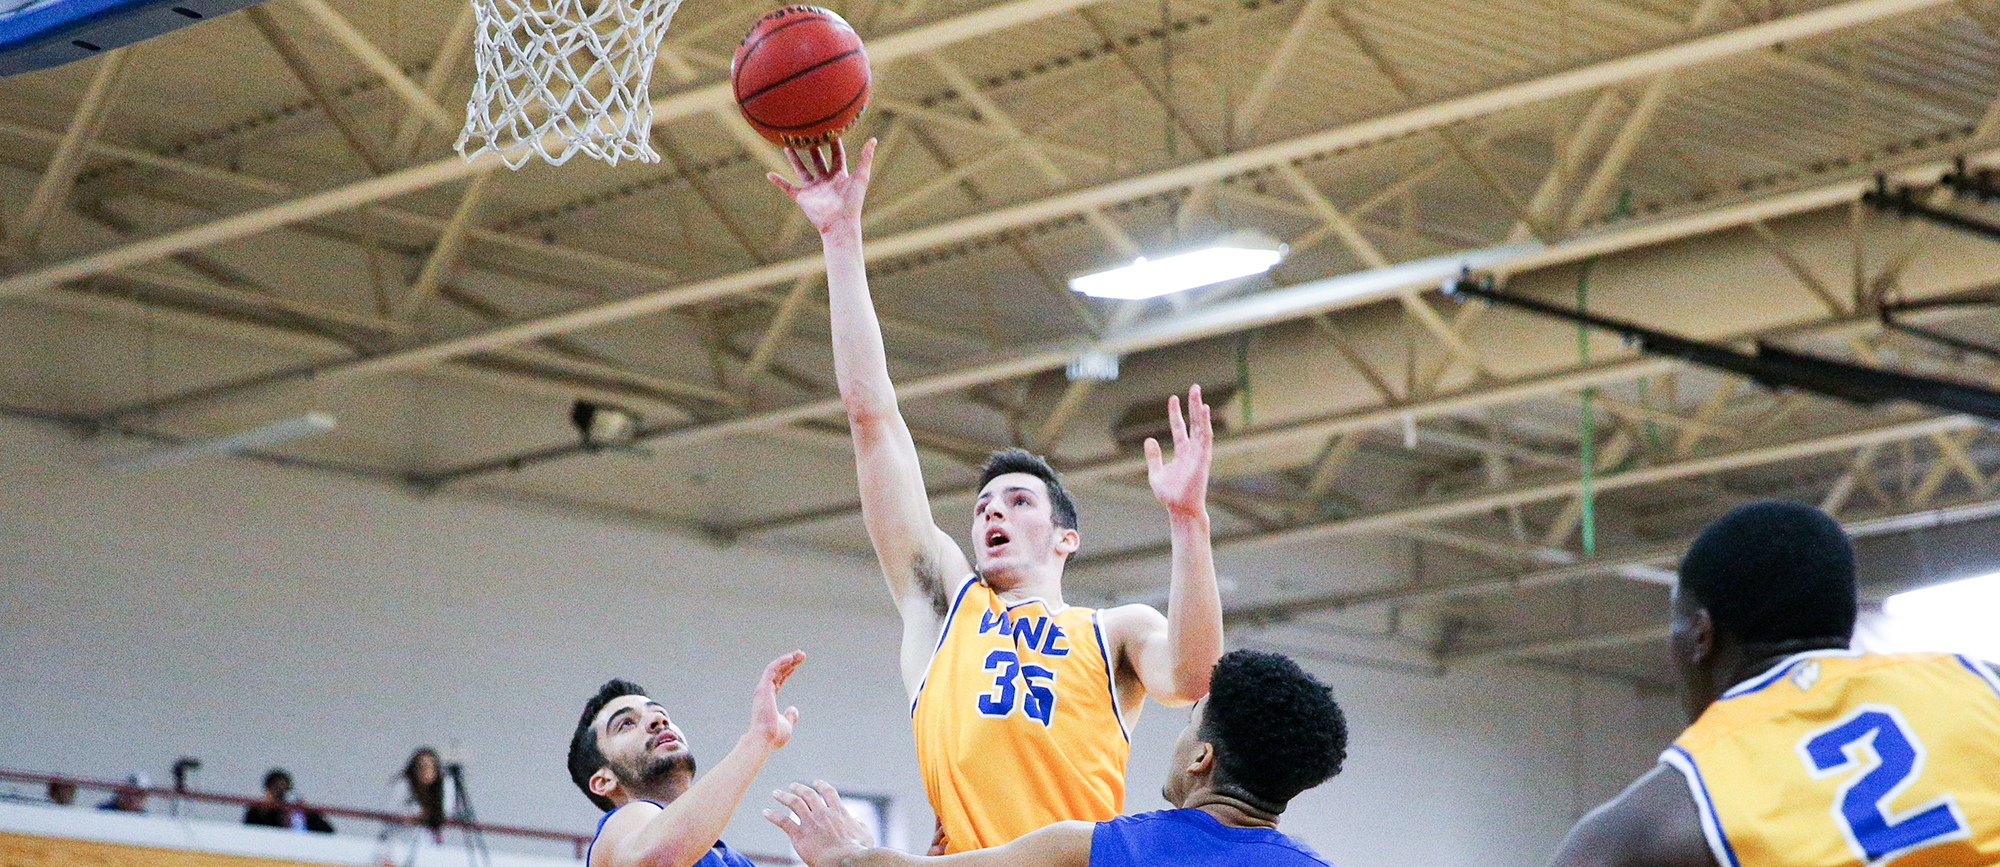 Freshman forward Zach Tavitian posted his first career double-double (29 points, ten rebounds) in Western New England's 102-86 loss at UNE on Saturday (Photo by Chris Marion).